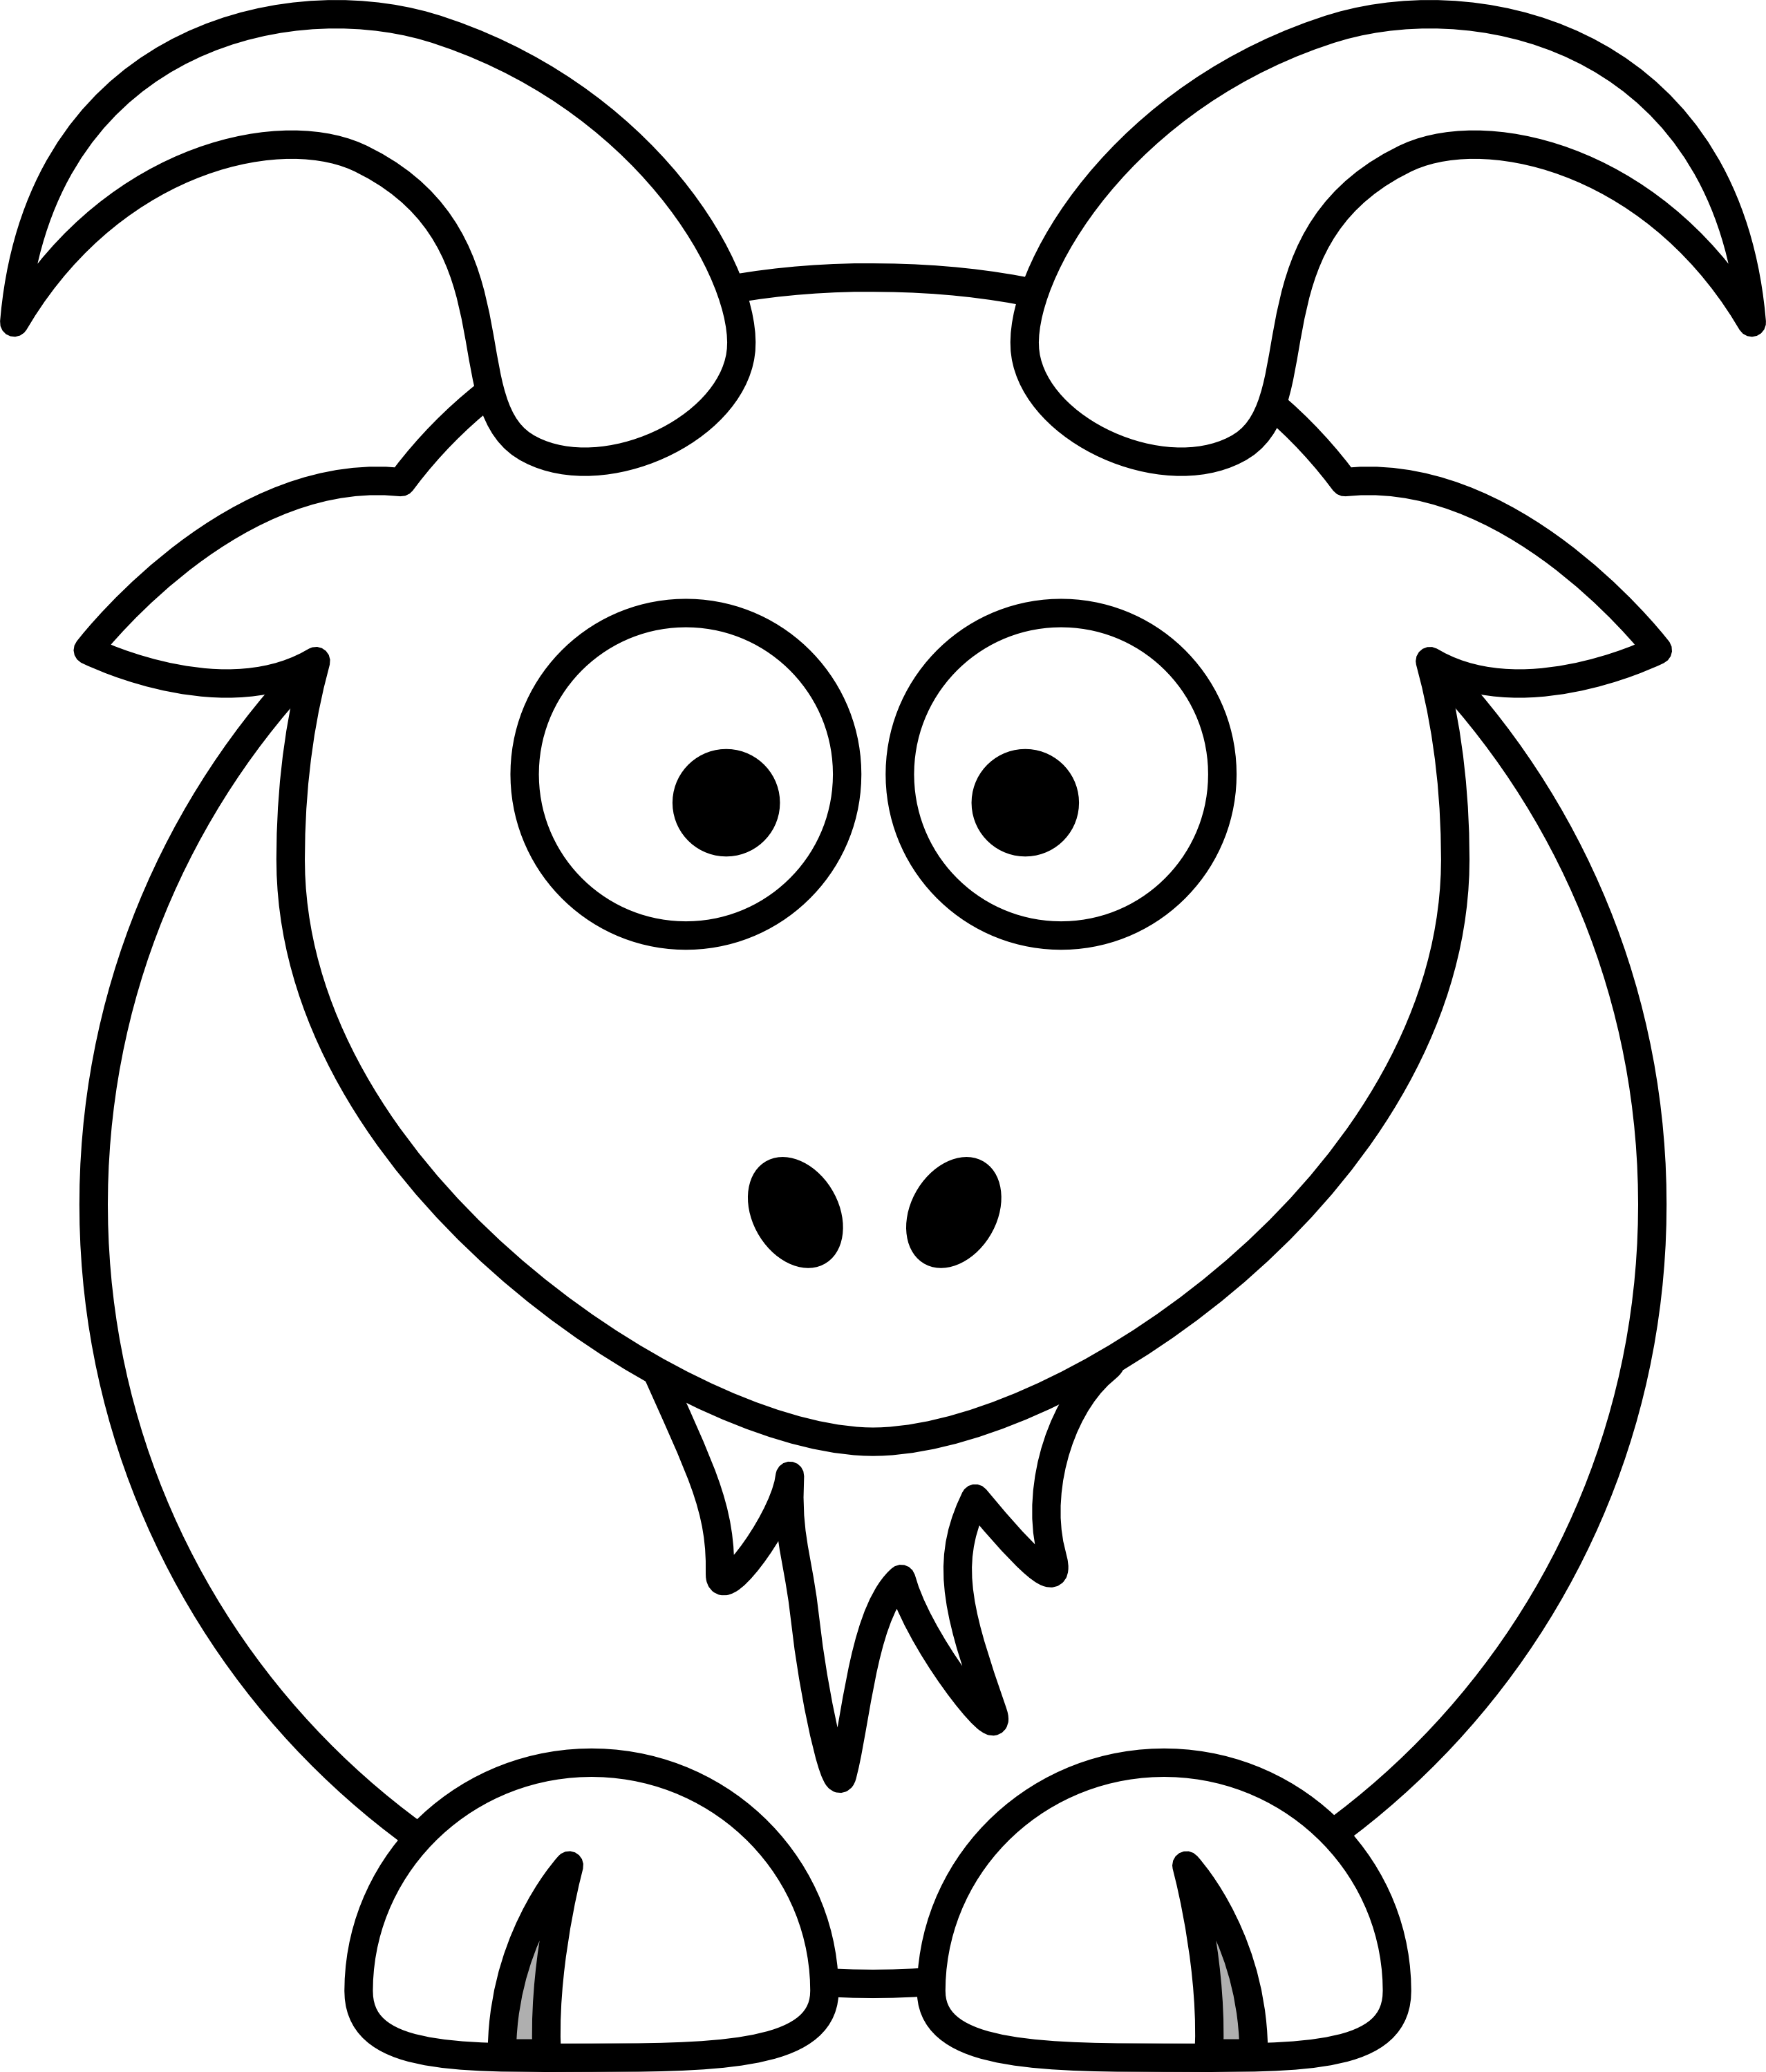 Free Black And White Clipart, Download Free Clip Art, Free.